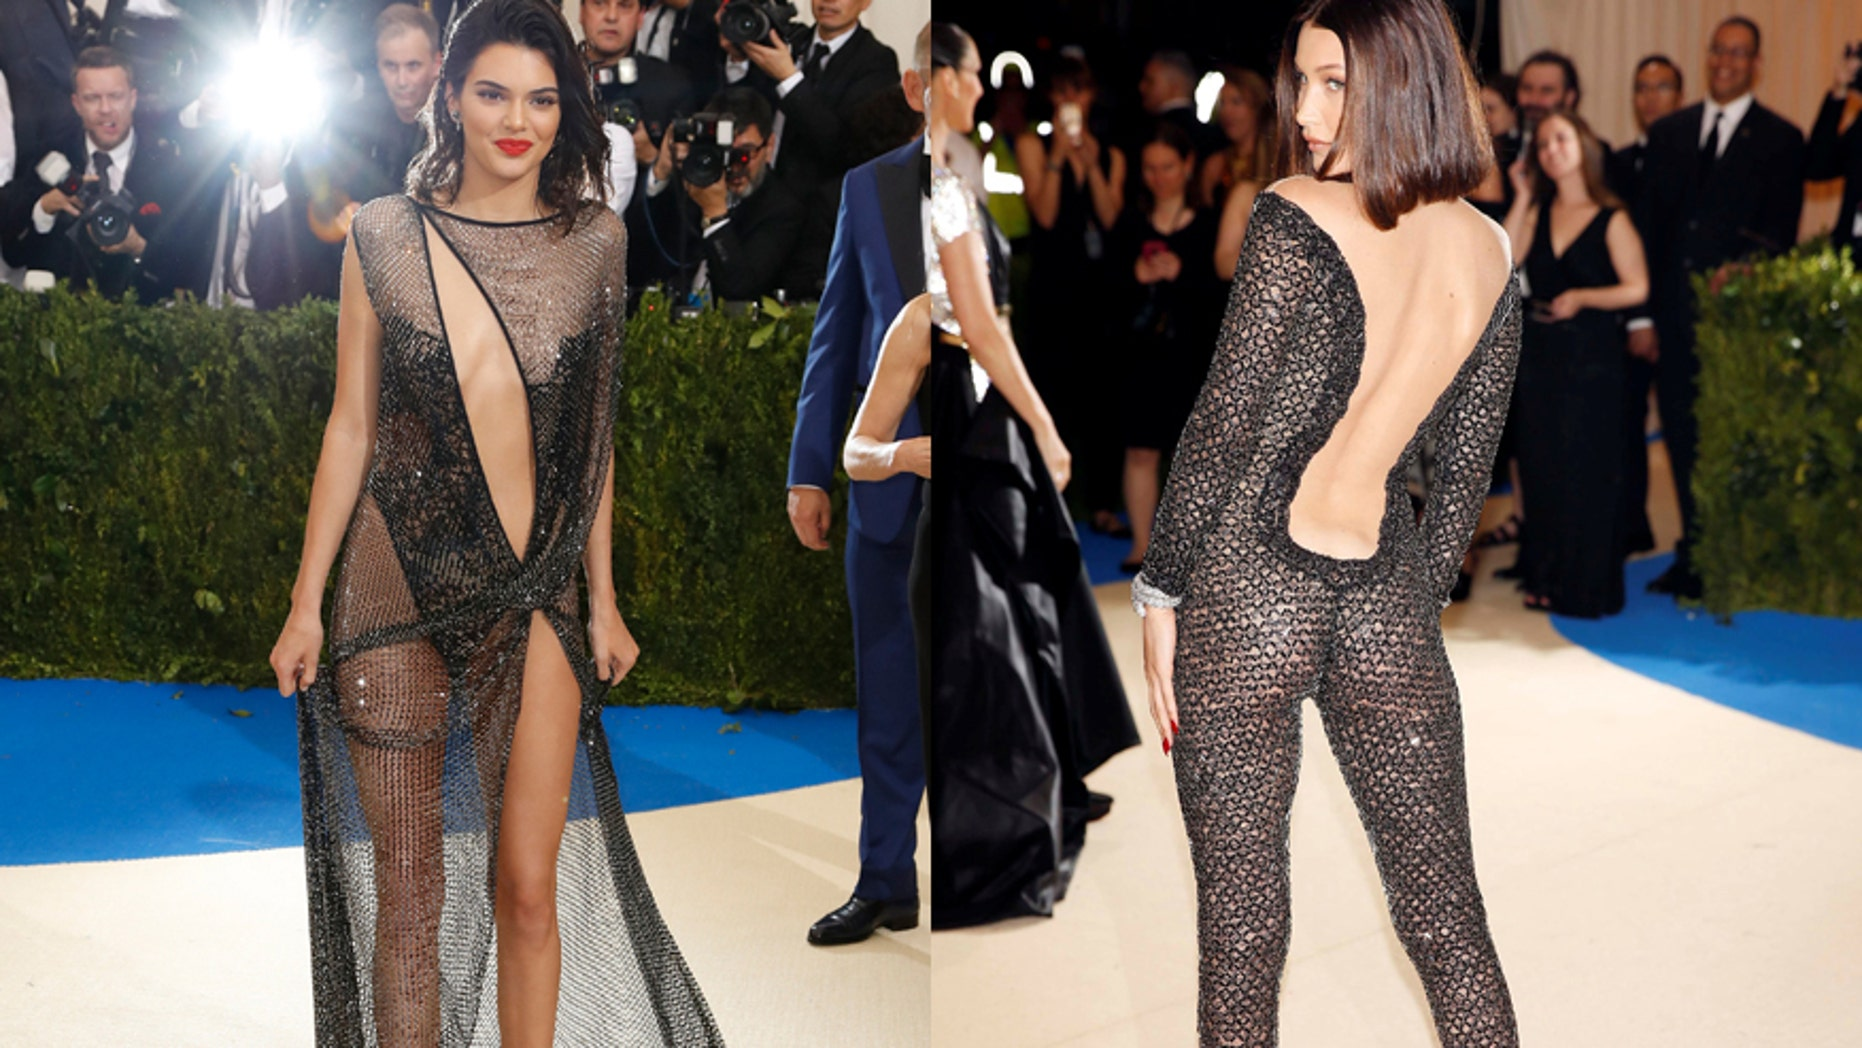 Models Kendall Jenner (left) and Bella Hadid attend the 2017 Met Gala in New York City, May 1, 2017